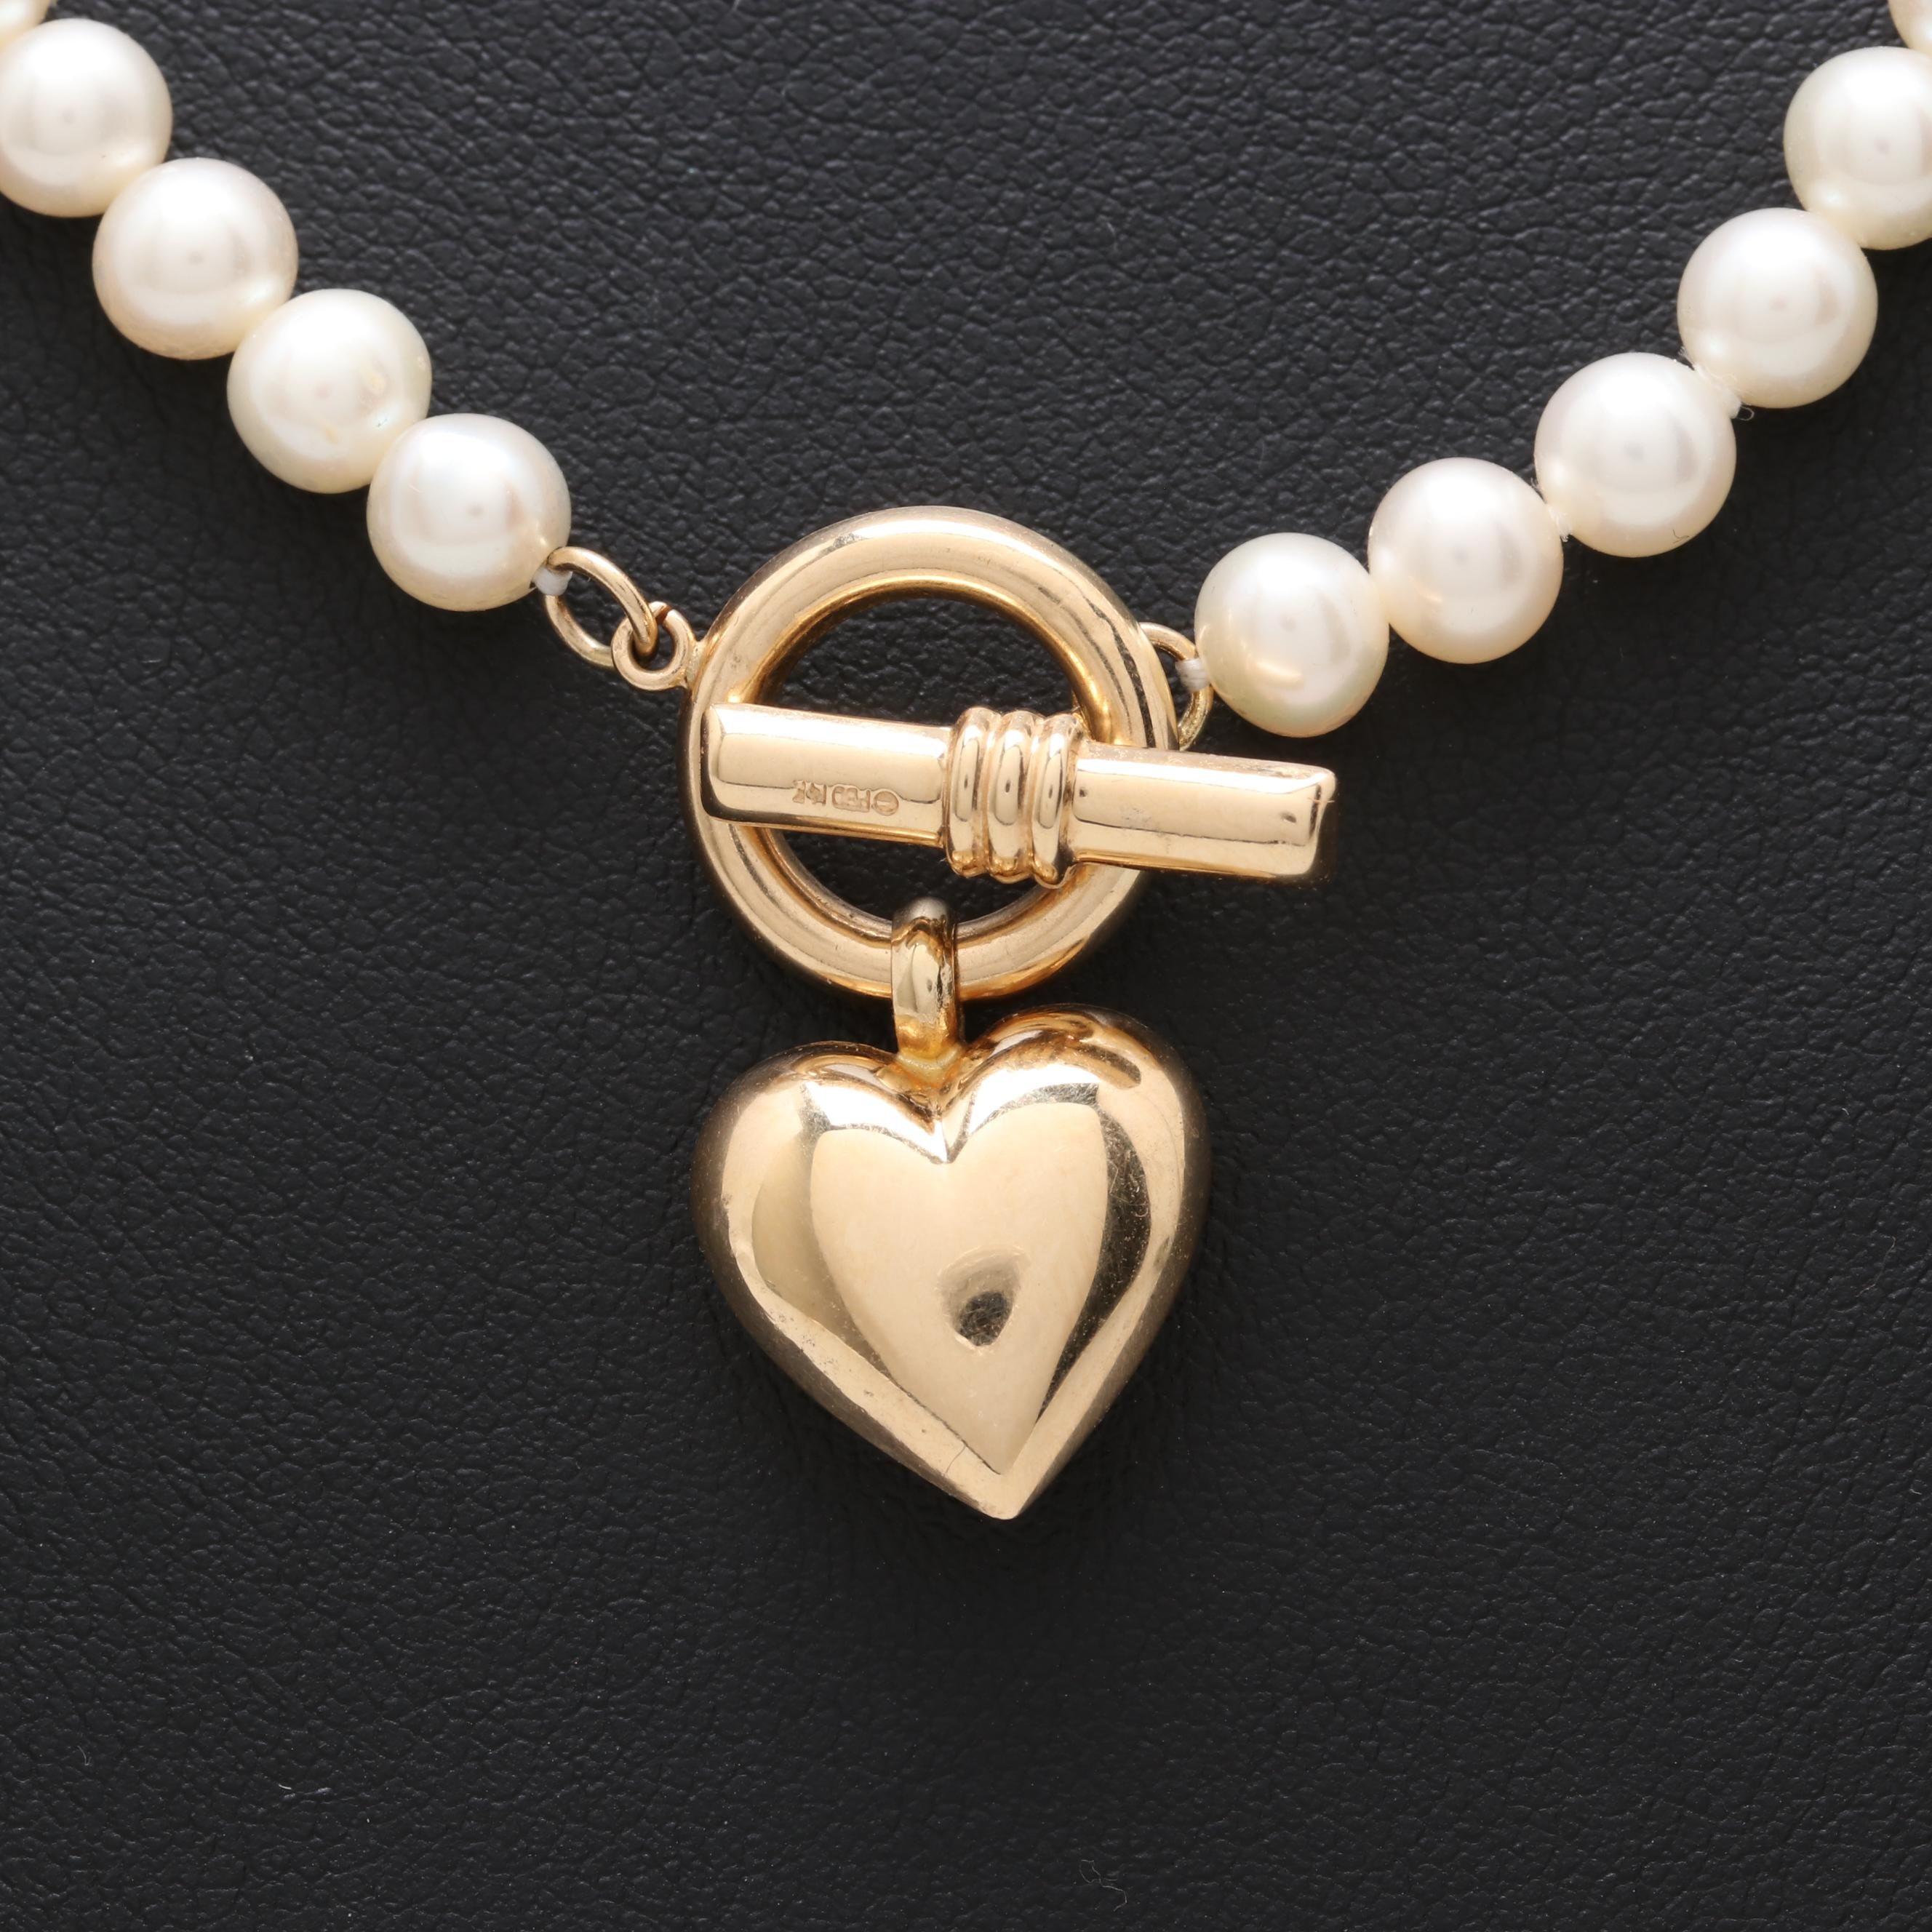 14K Yellow Gold Cultured Pearl Toggle Necklace with Heart Charm